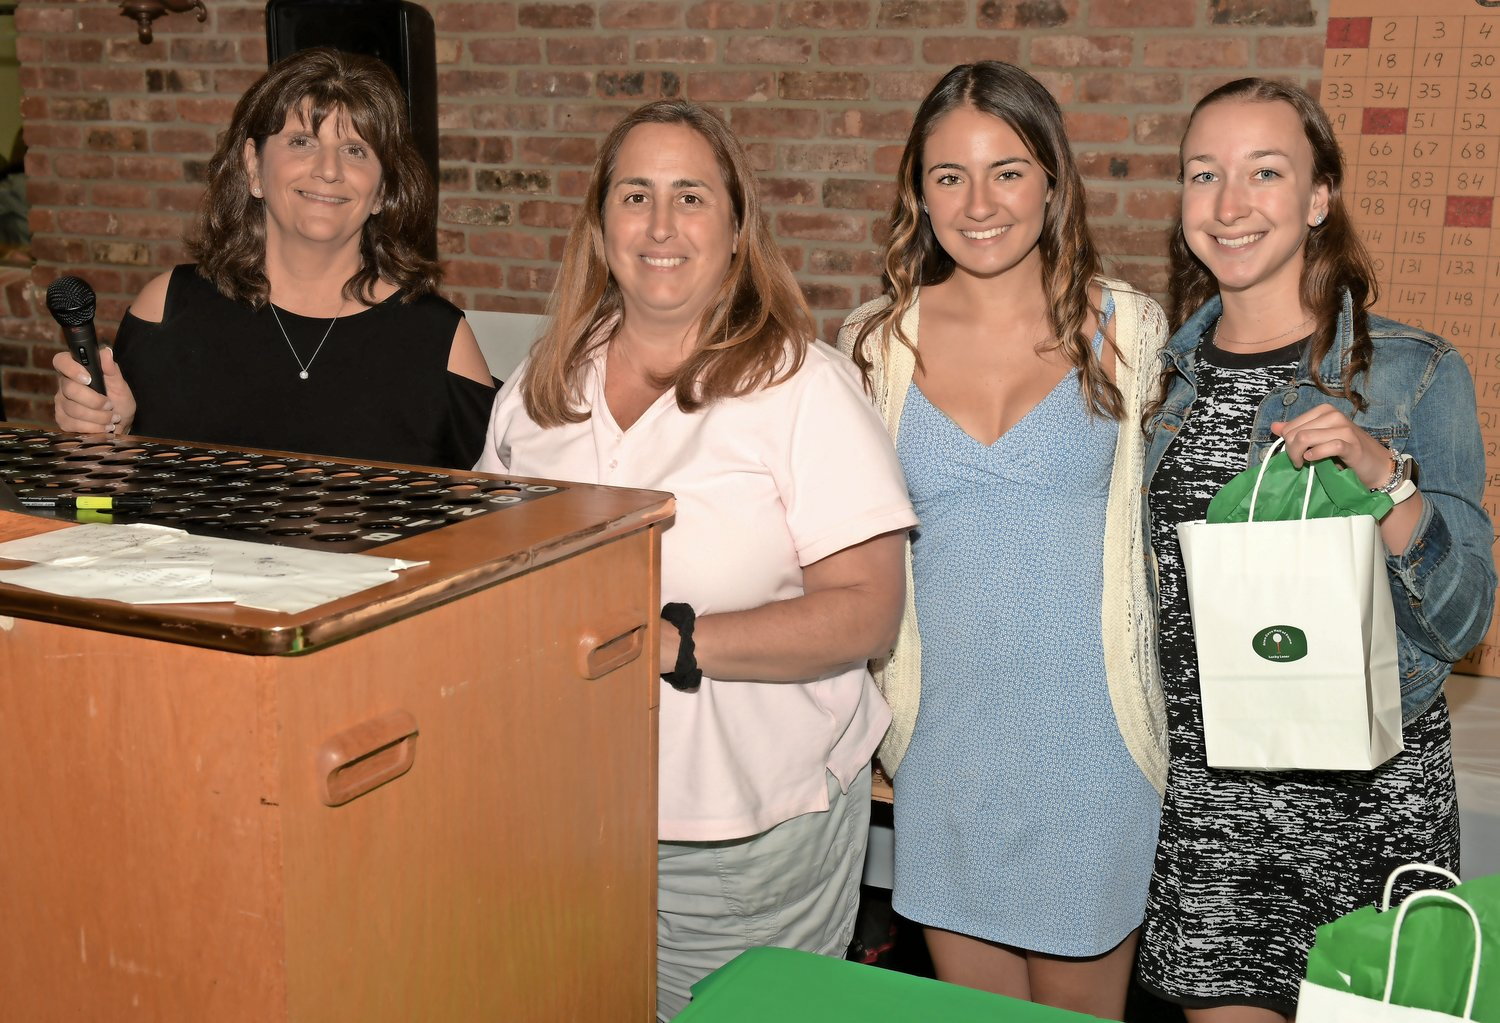 Parks and Recreation Director Darcey Belyea, far left, helped run the raffle, with Leslie Maccarone Baptista, Erin Moore and Lindsey Payton.